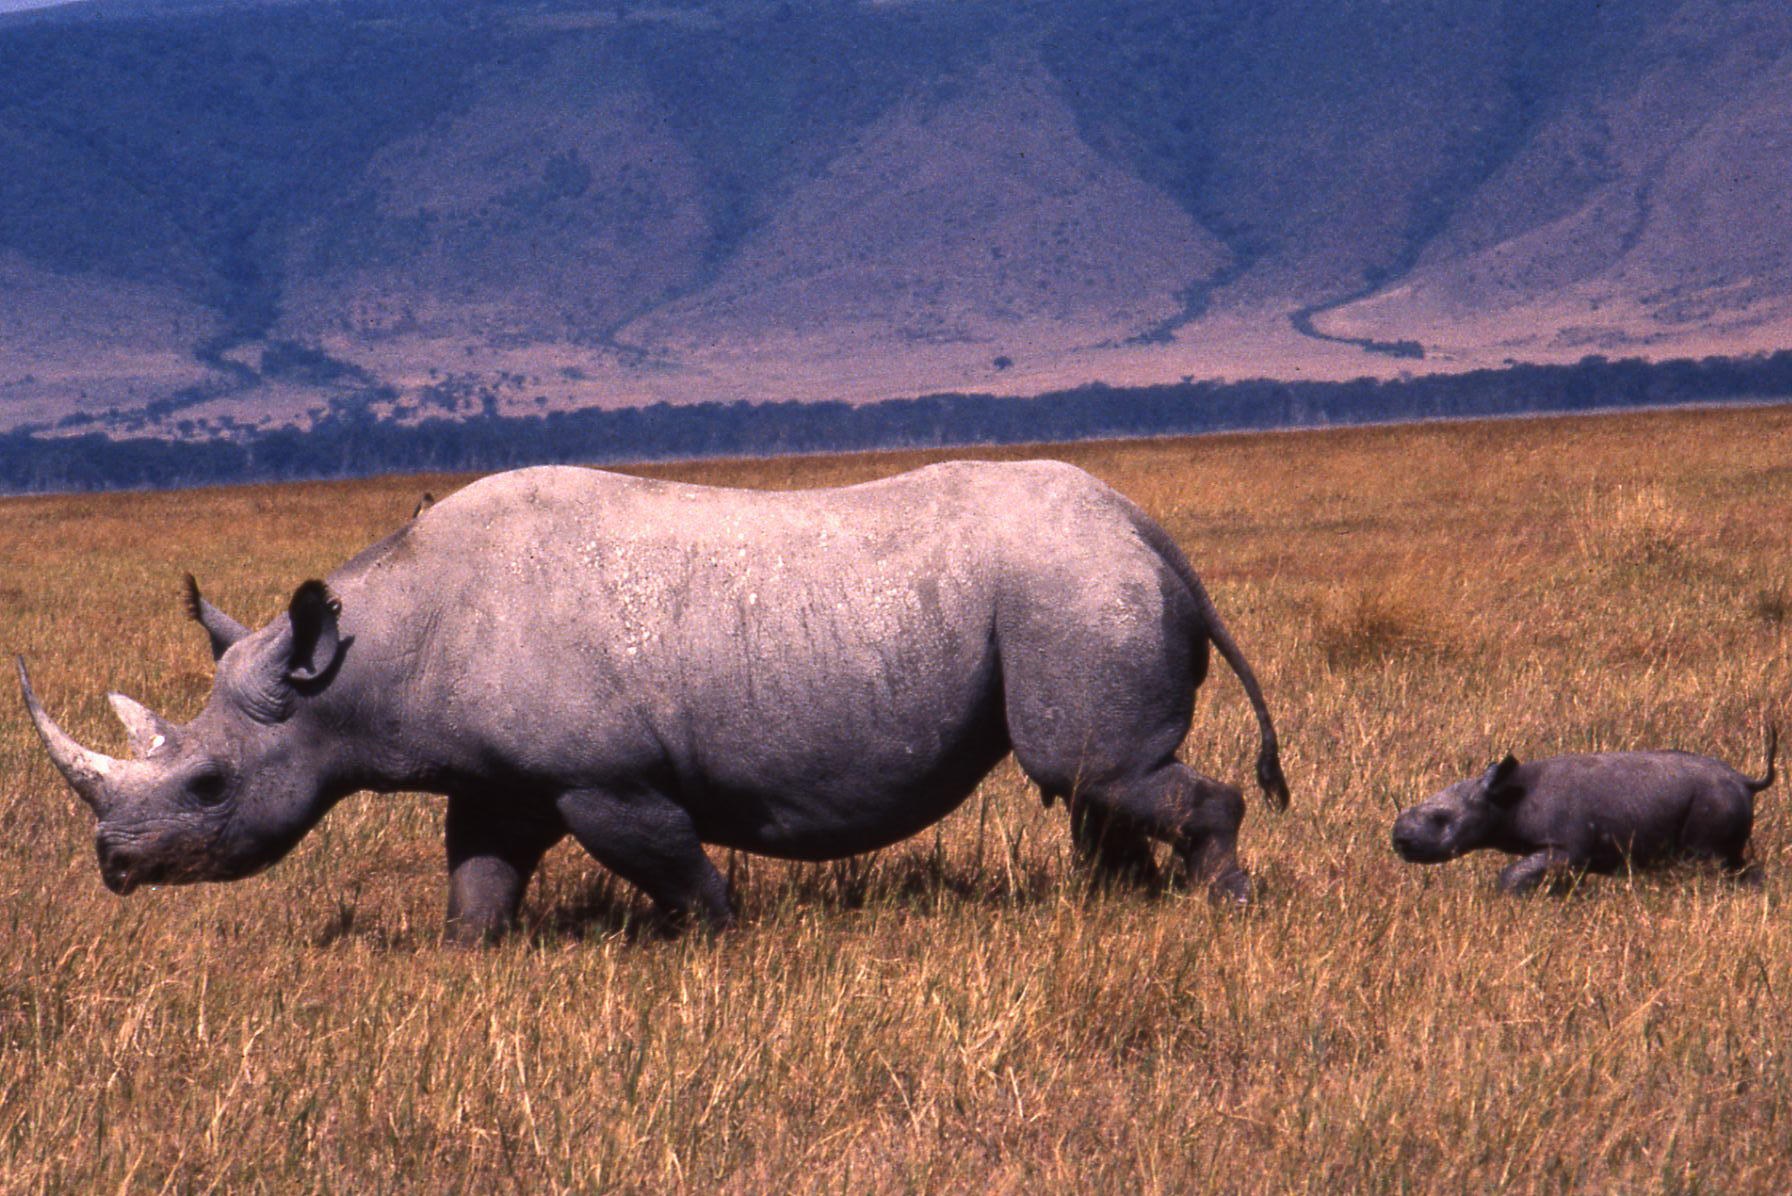 Search for Rhino in the Ngorongoro Crater